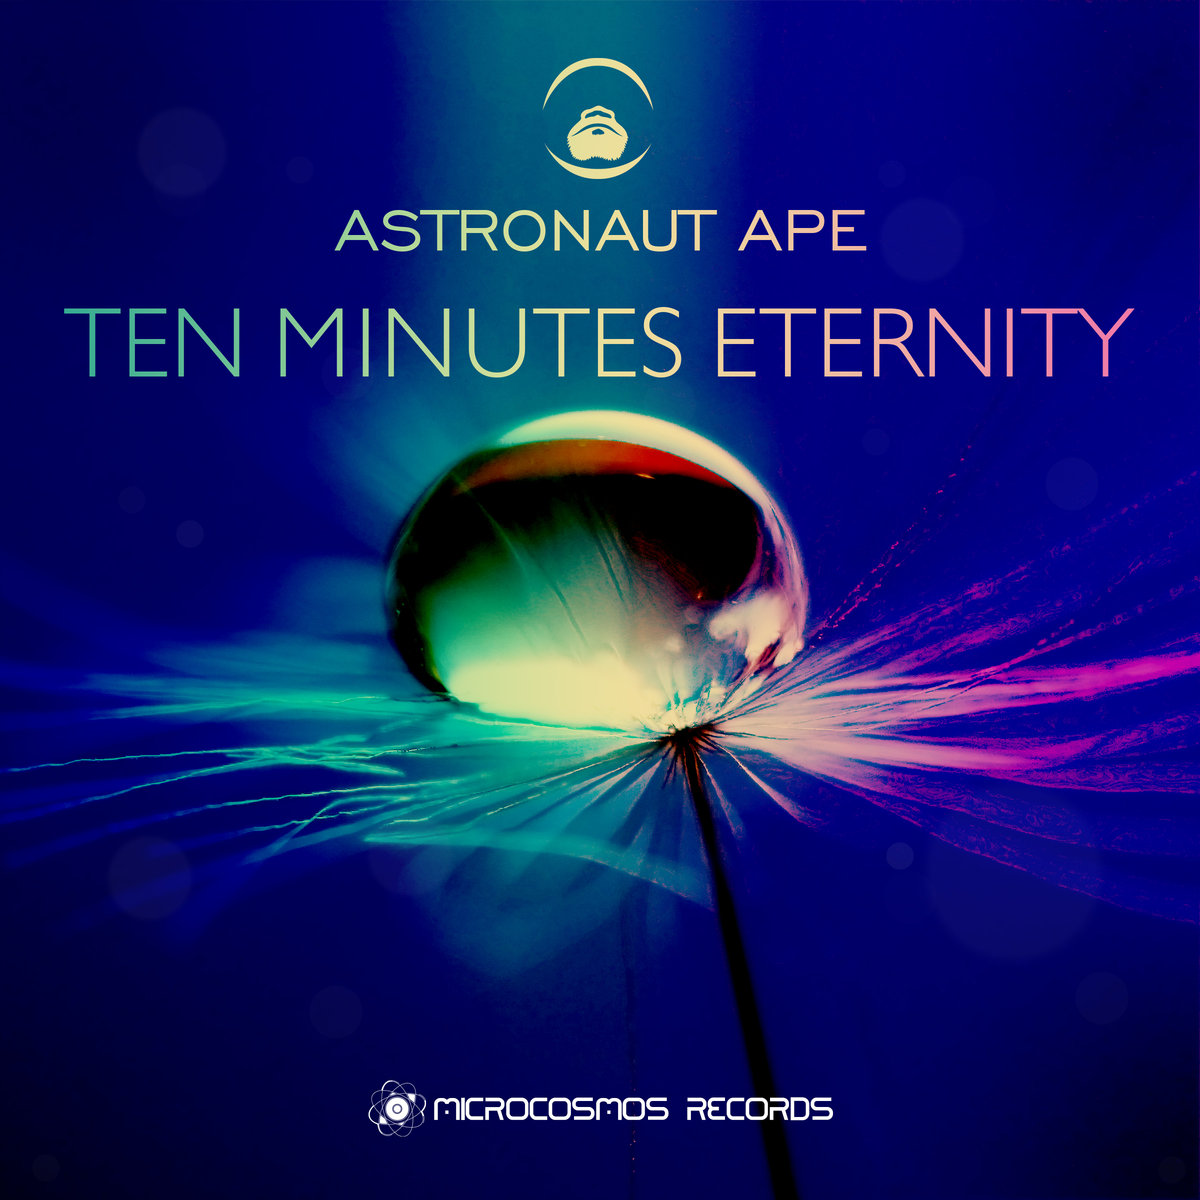 Astronaut Ape - Ten Minutes Eternity @ 'Ten Minutes Eternity' album (ambient, chill-out)